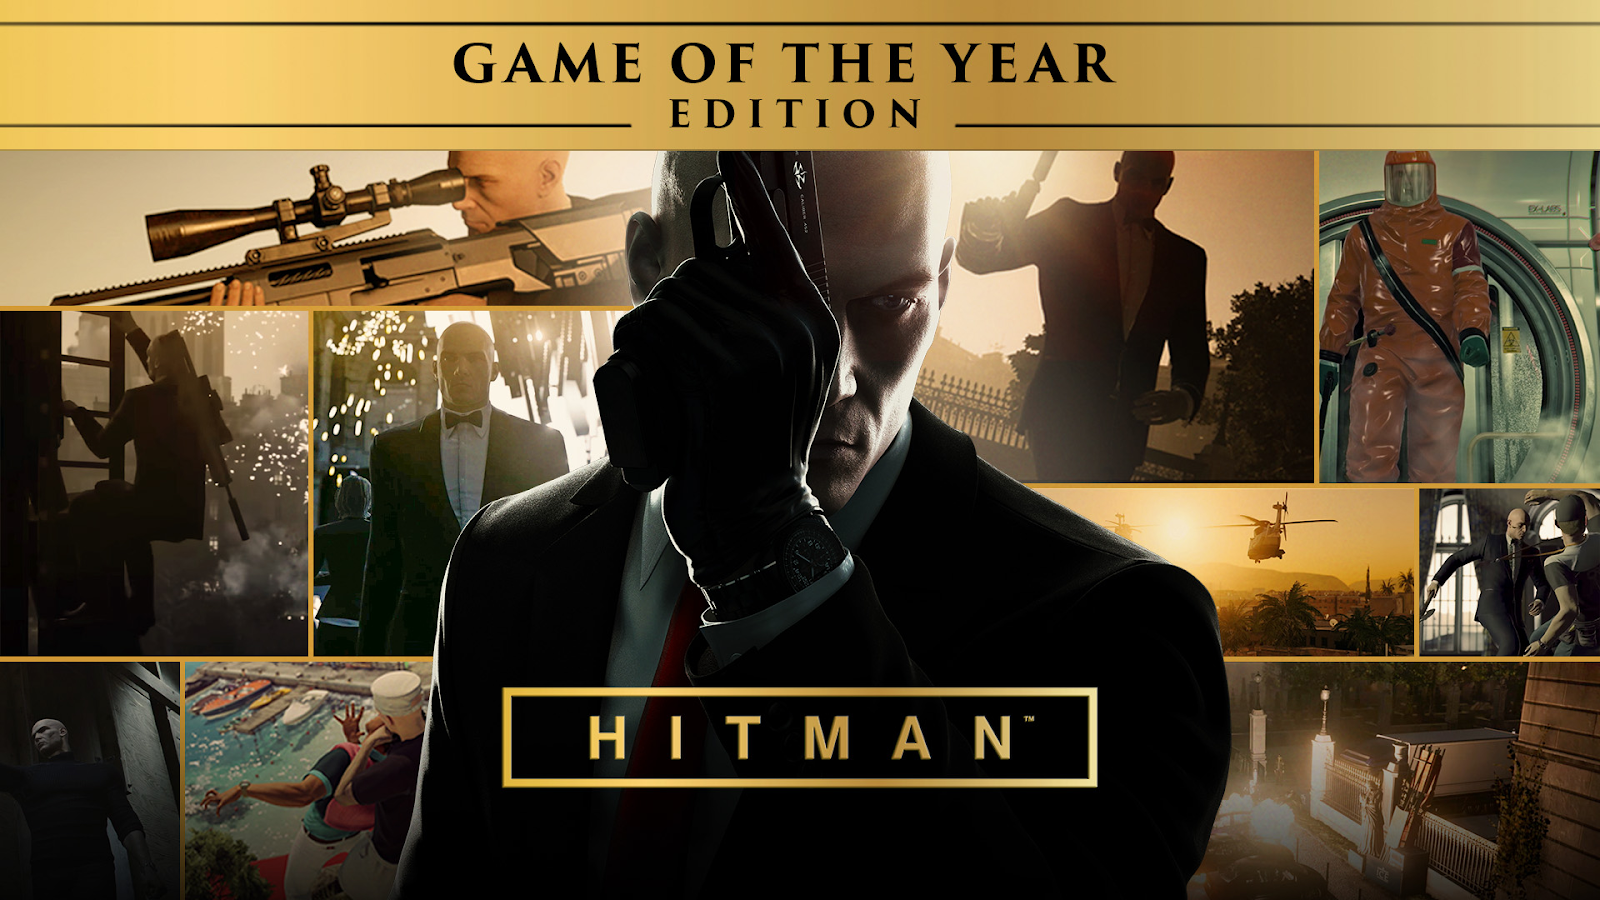 hitman-game-of-the-year-edition